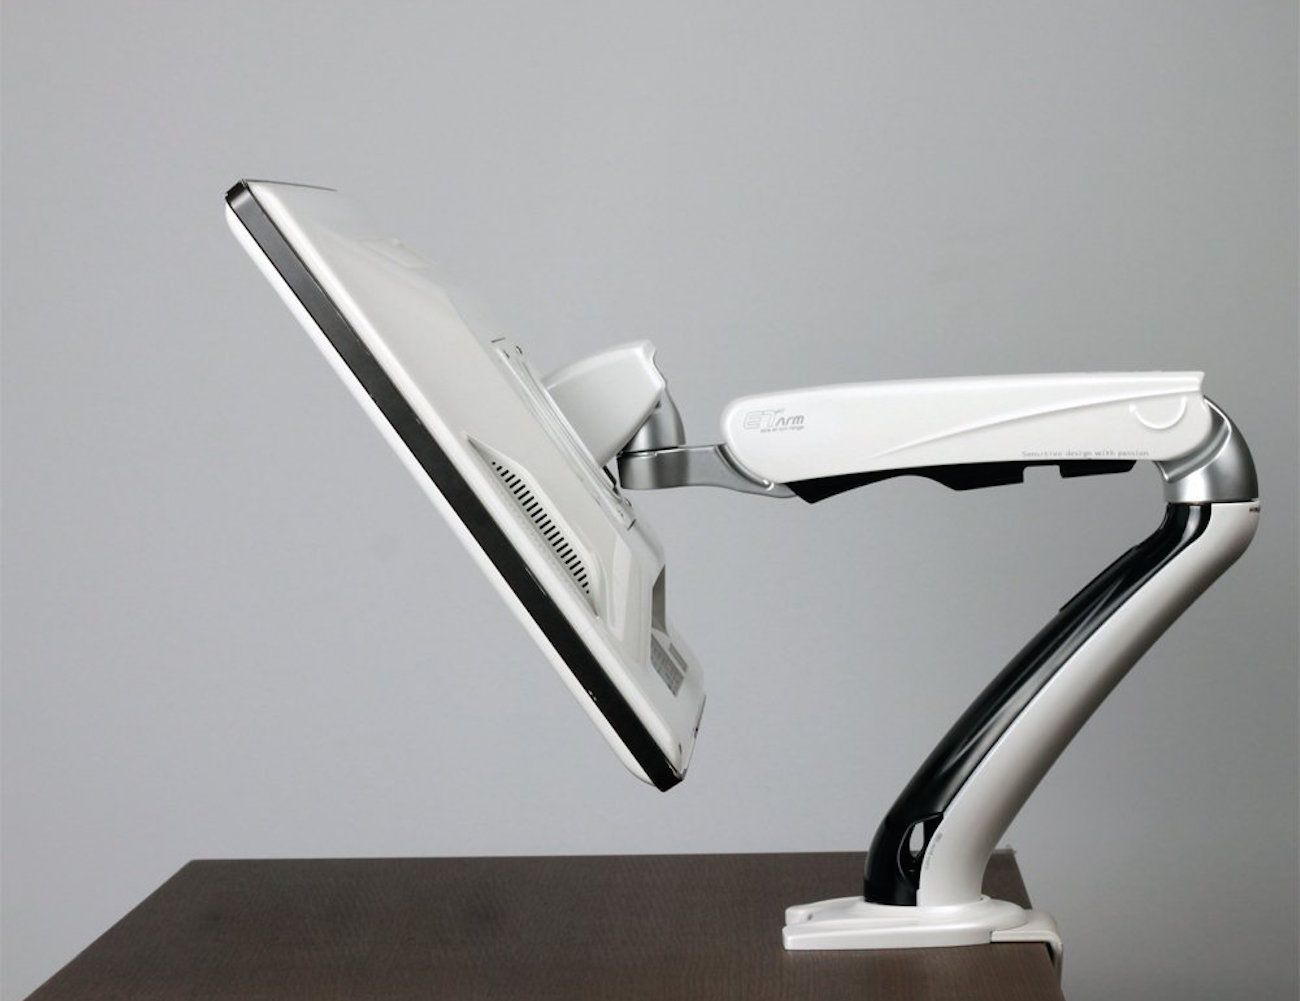 Description of workrite willow monitor arm willow is specifically - Willow Is Specifically Developed To Support Newer Monitors Which Are Becoming Ever Lighter Whether You Have A One Pound Ultralight Display Or A 1